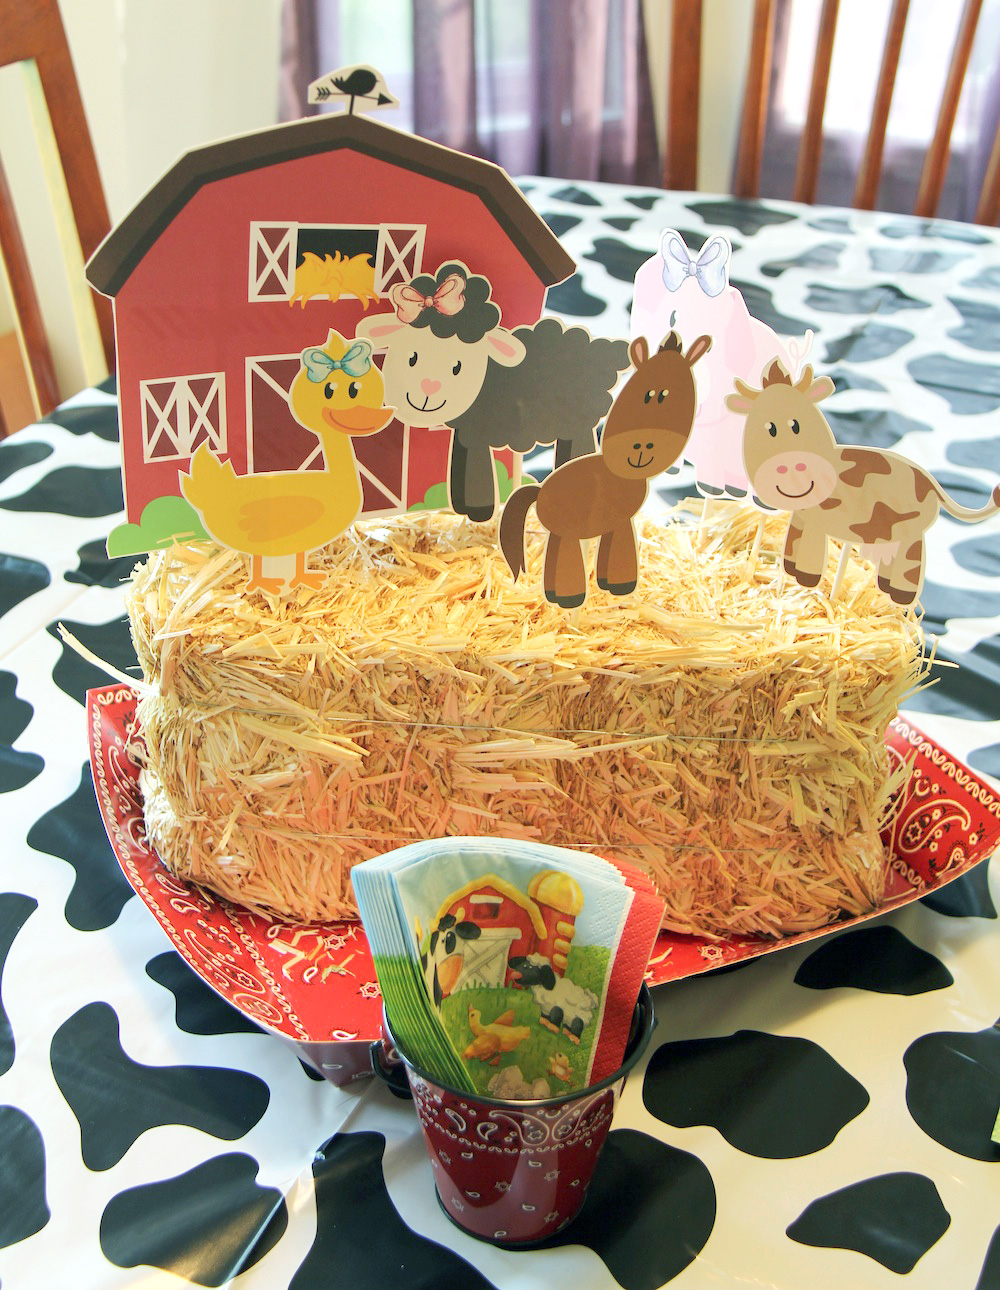 DIY Barn Themed Birthday Party Centerpiece | haybale with cut out farm animals | bandana and cow print patterns | as seen on www.gigglehearts.com